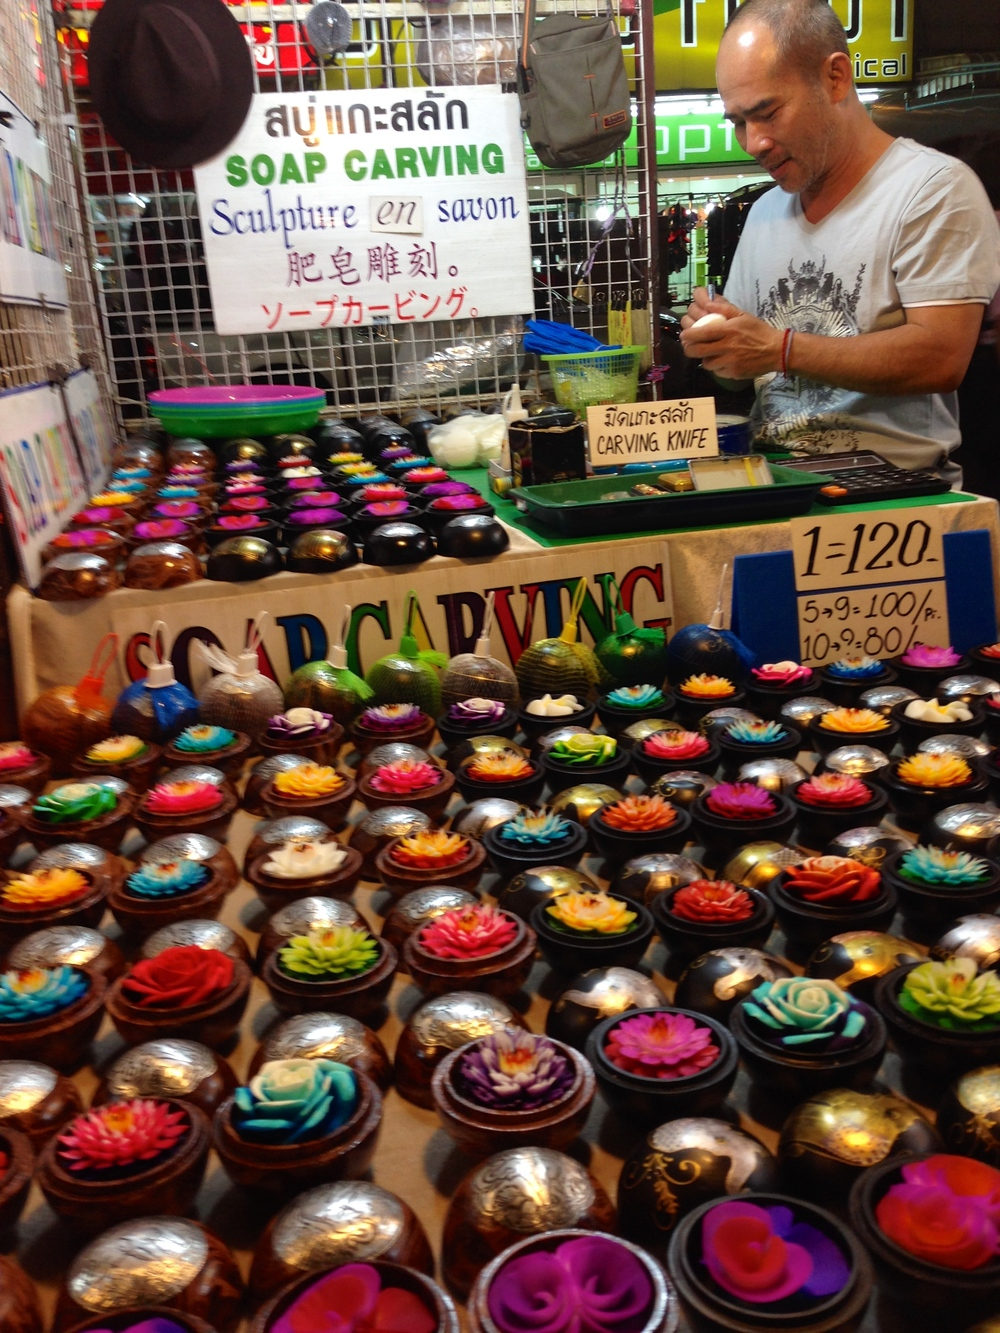 Candles carved in the shape of flowers are a popular souvenir